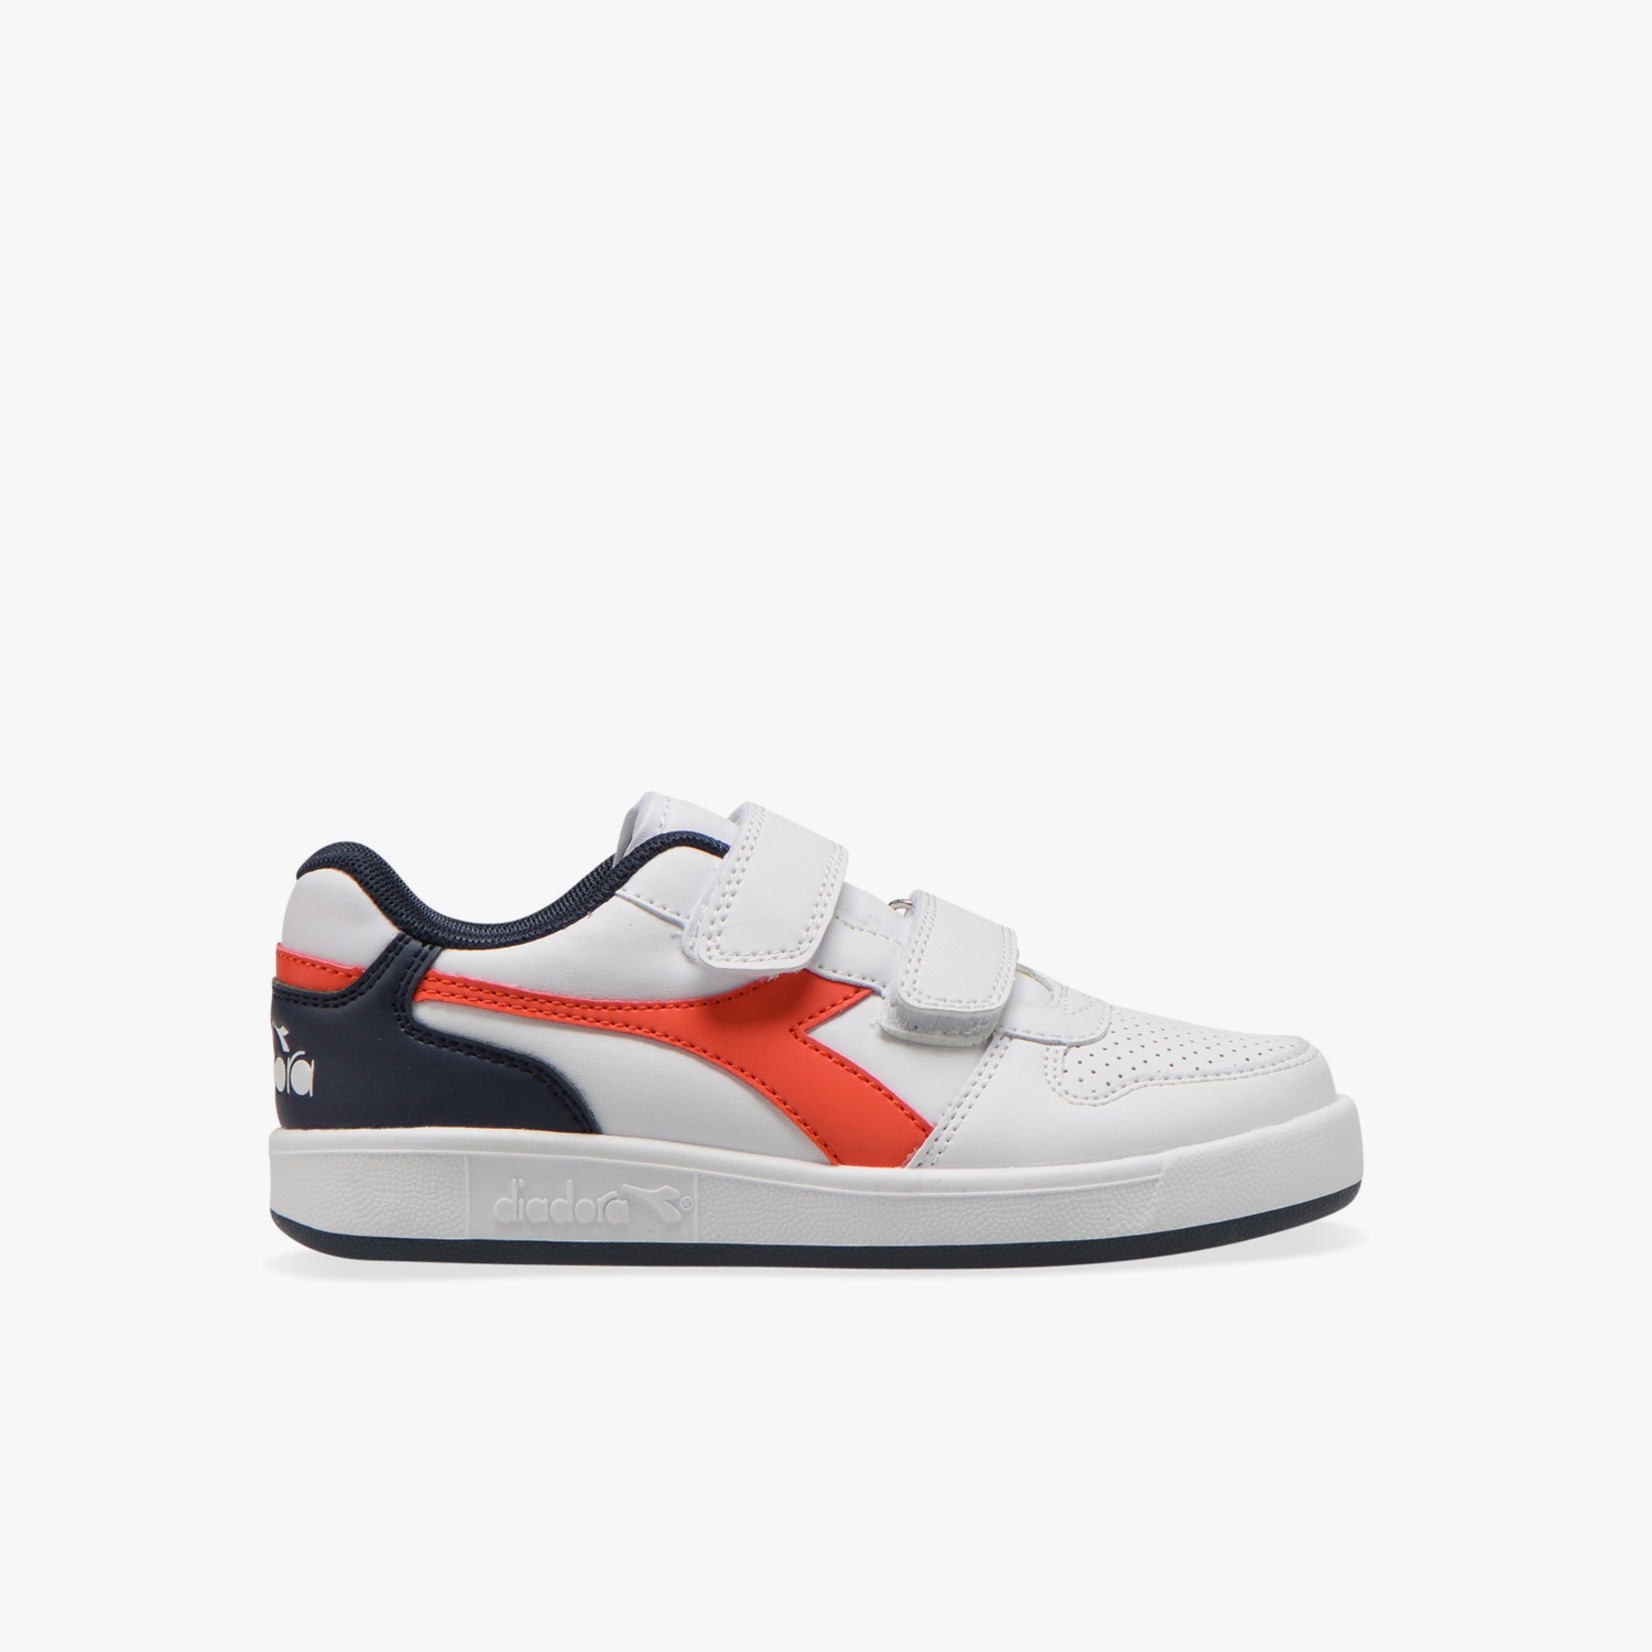 Diadora Playground PS White/Fiesta